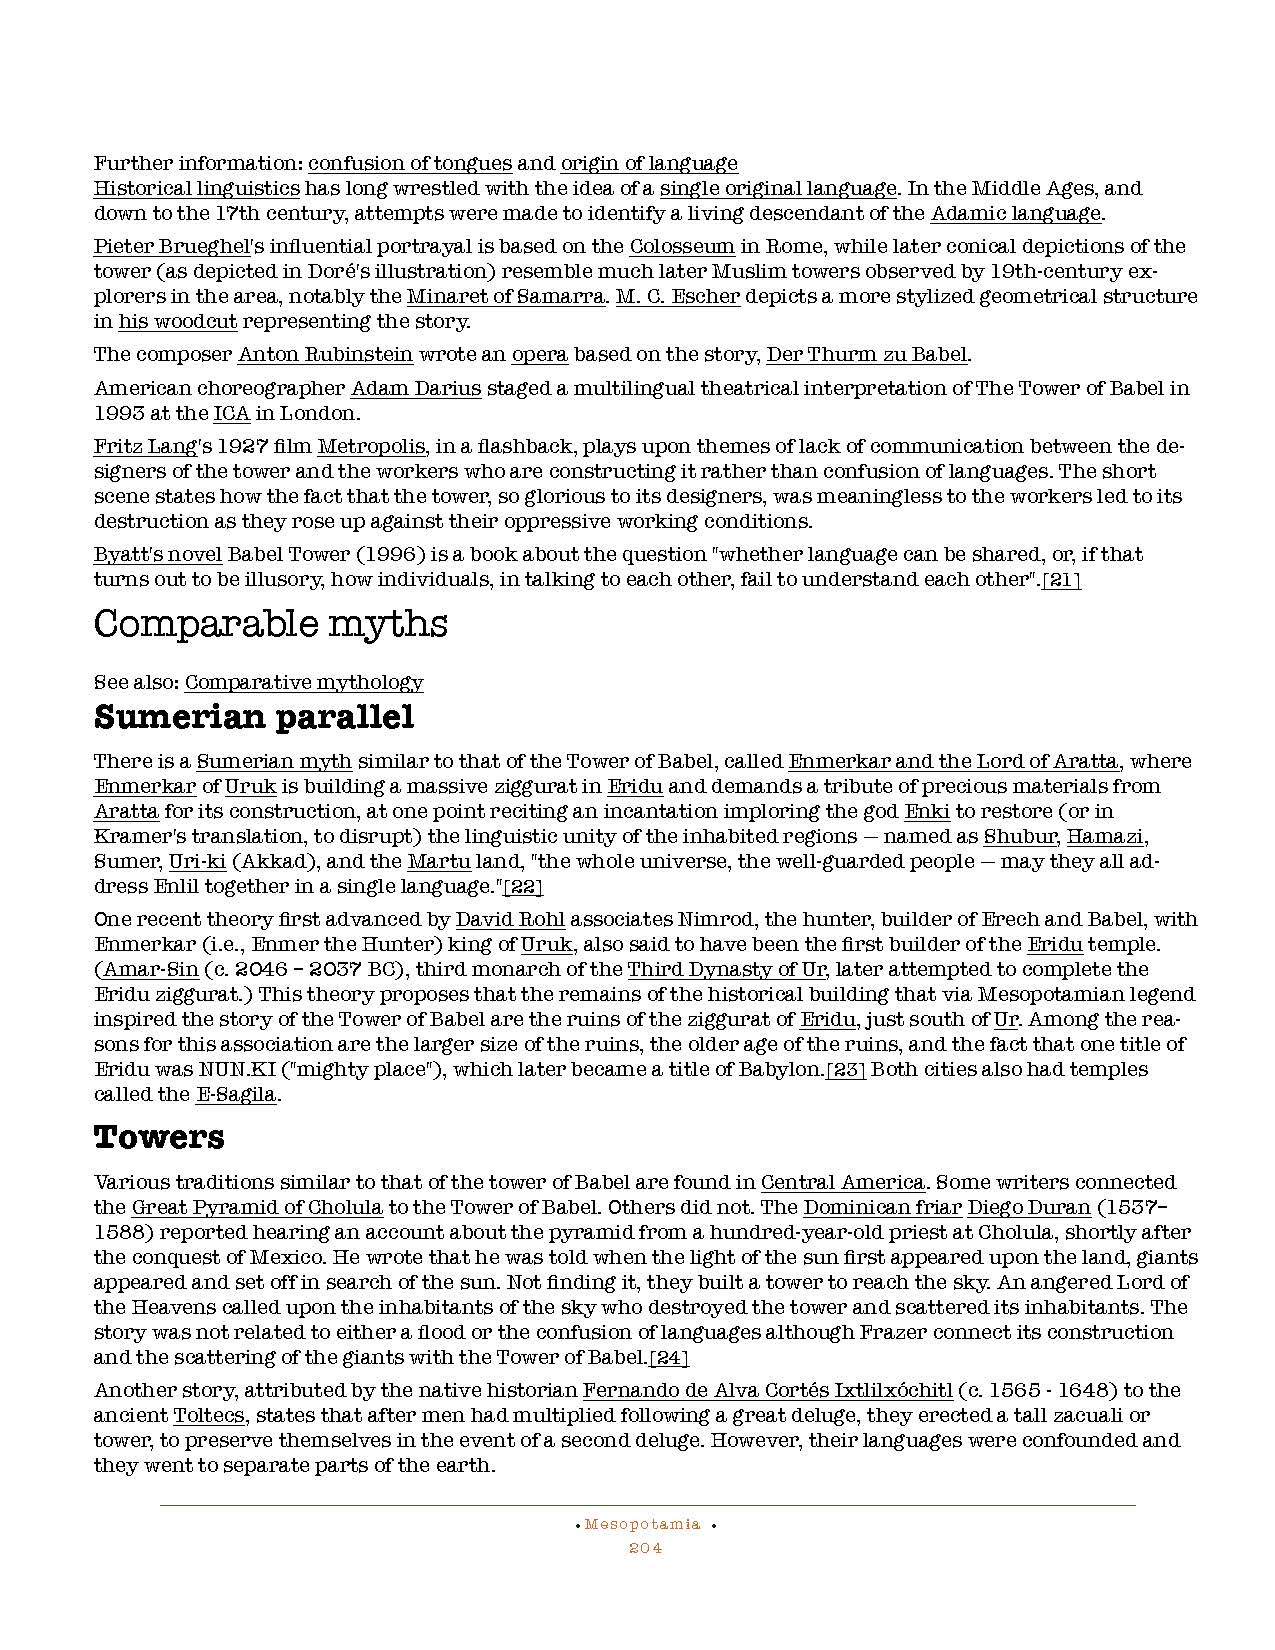 HOCE- Fertile Crescent Notes_Page_204.jpg